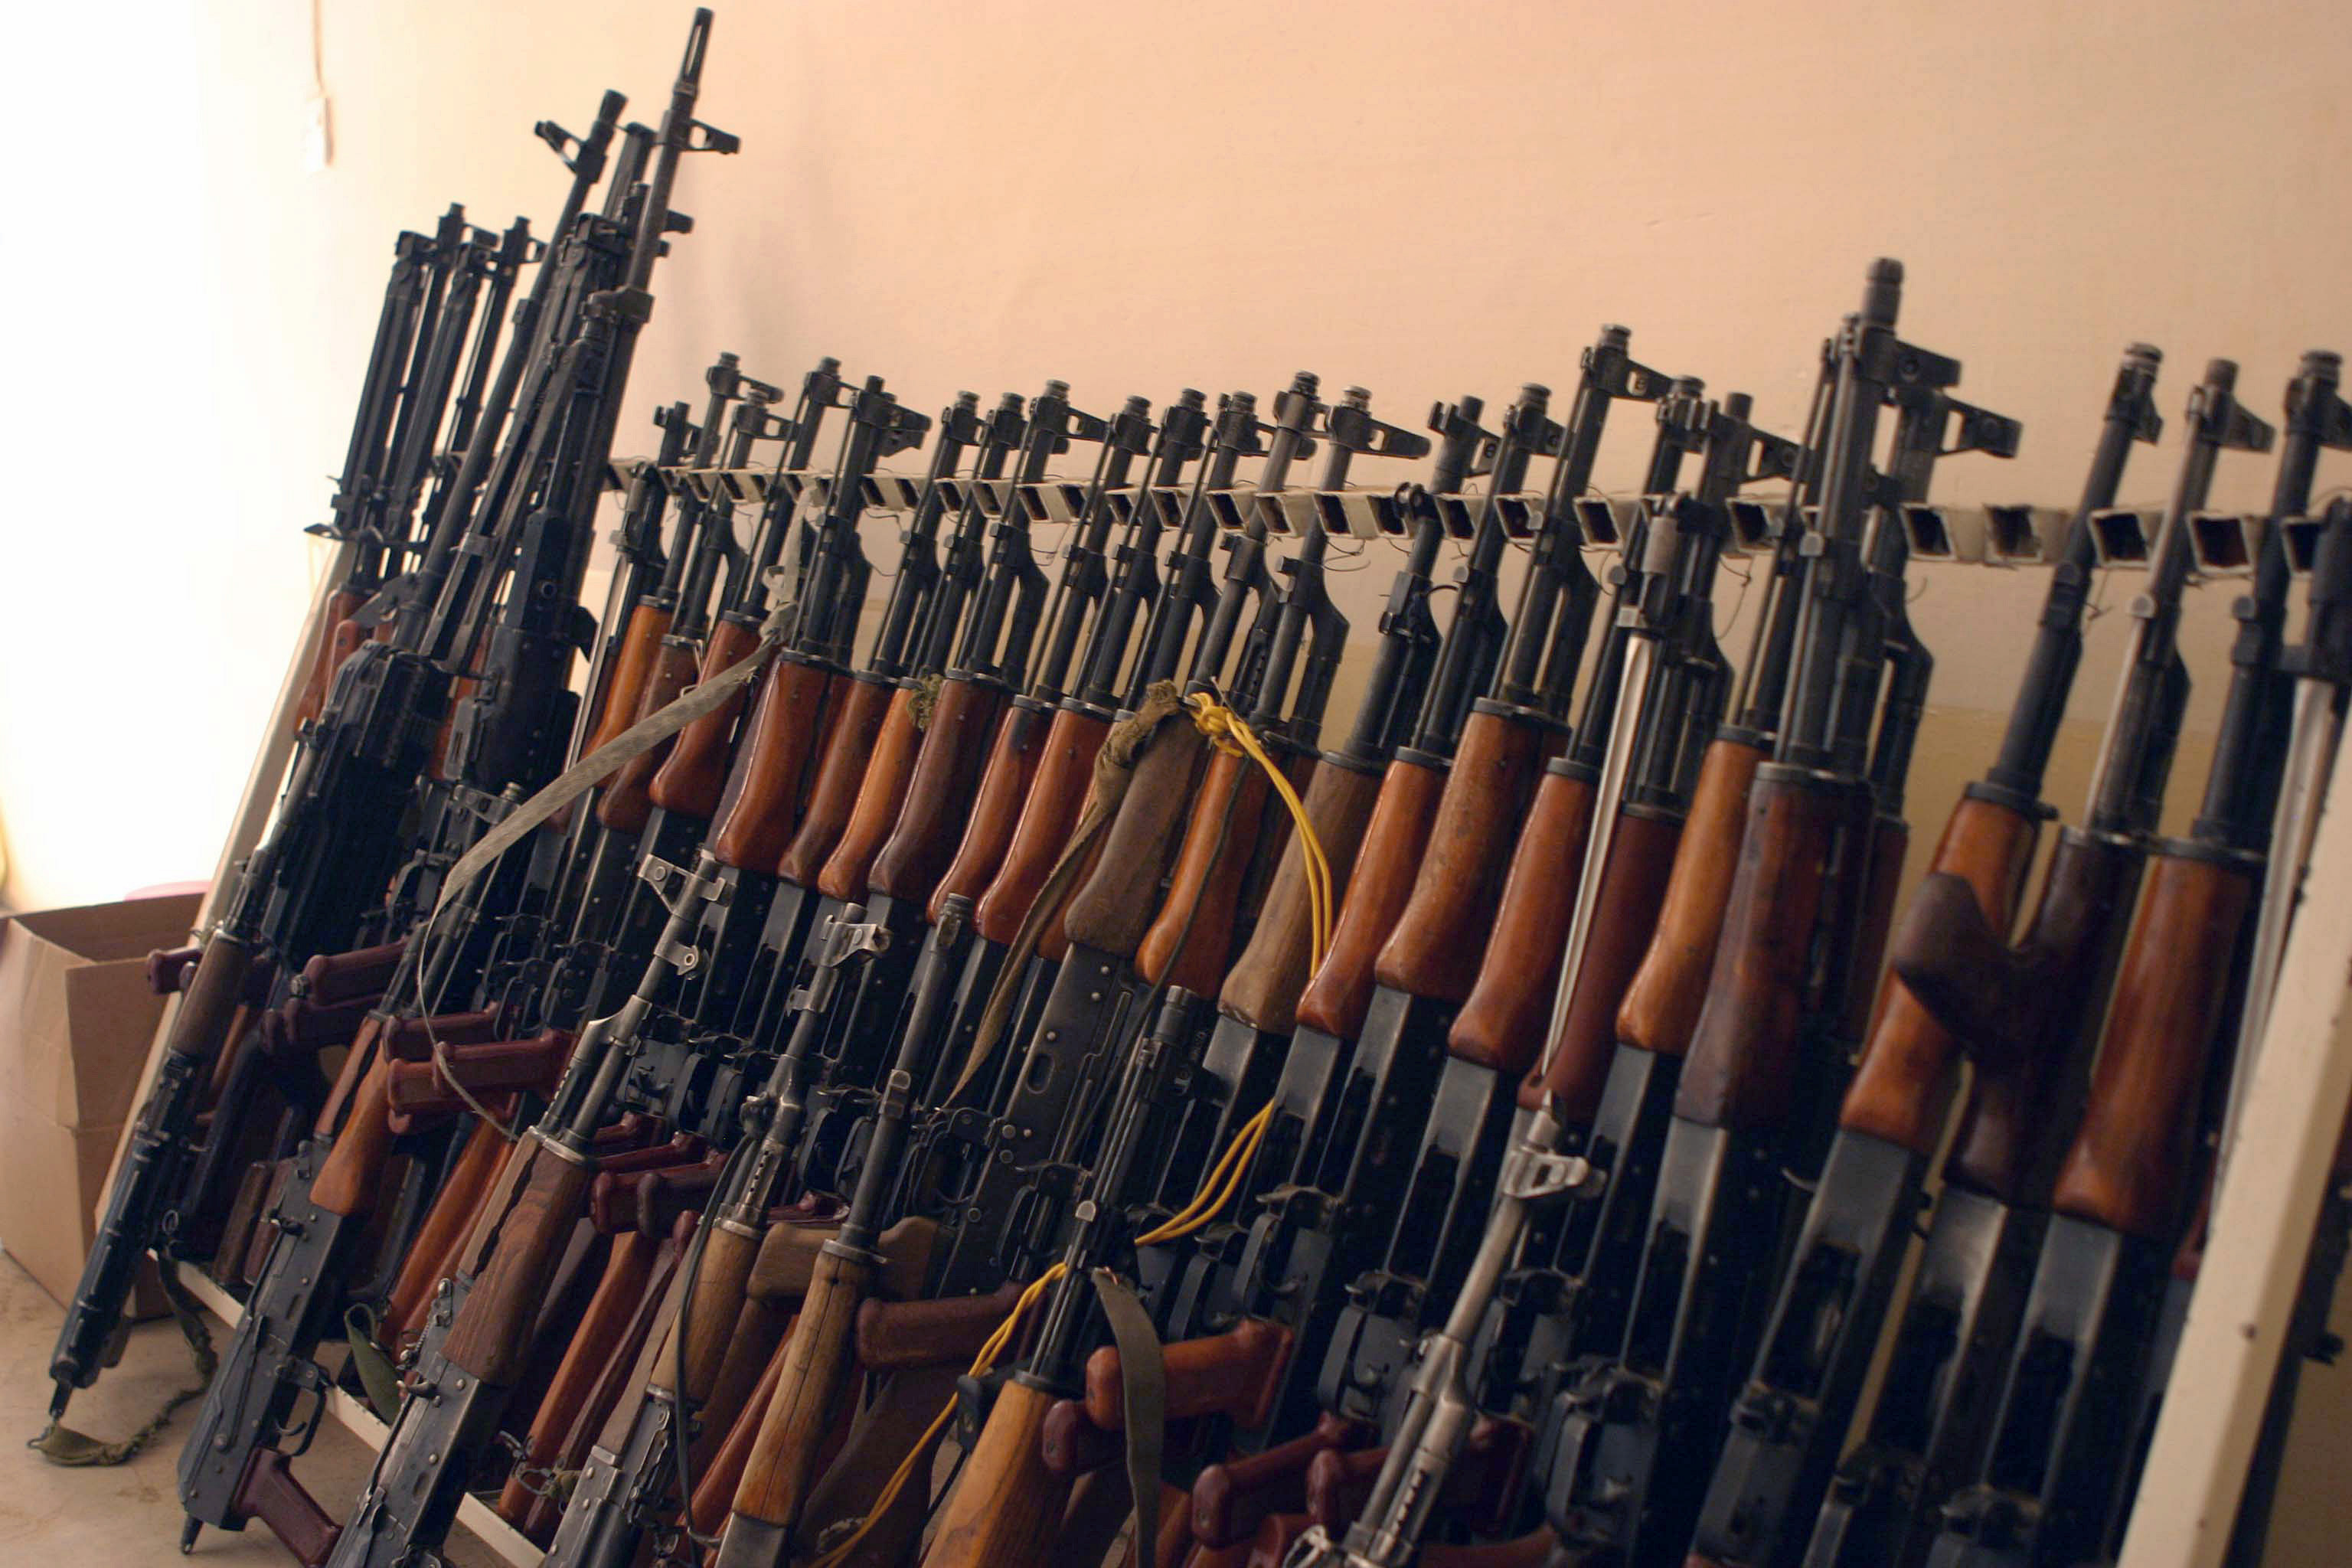 The New Humanitarian | Homemade gun sales flourish